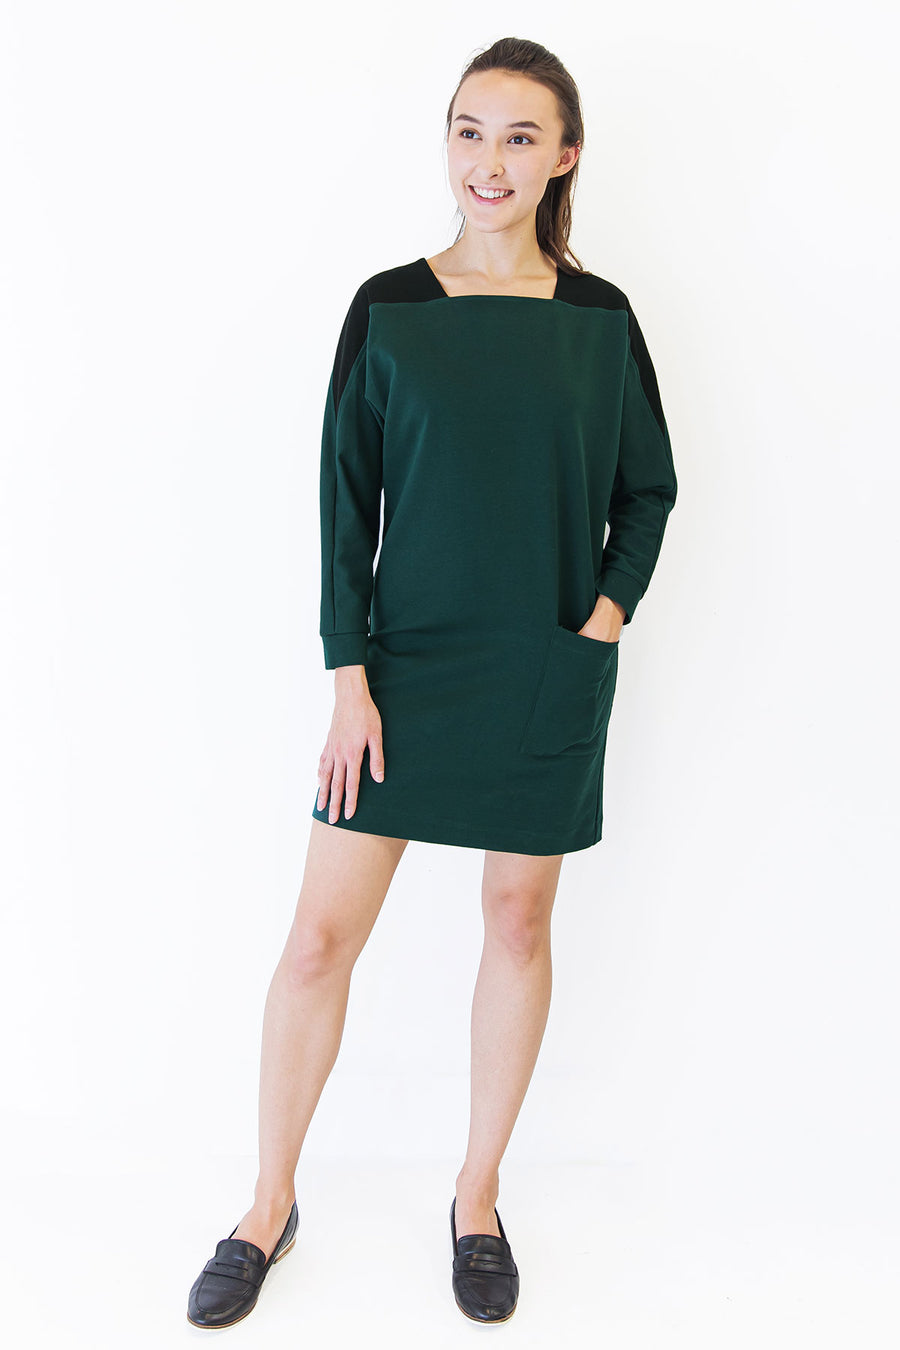 Green Sweater Dress with Pockets